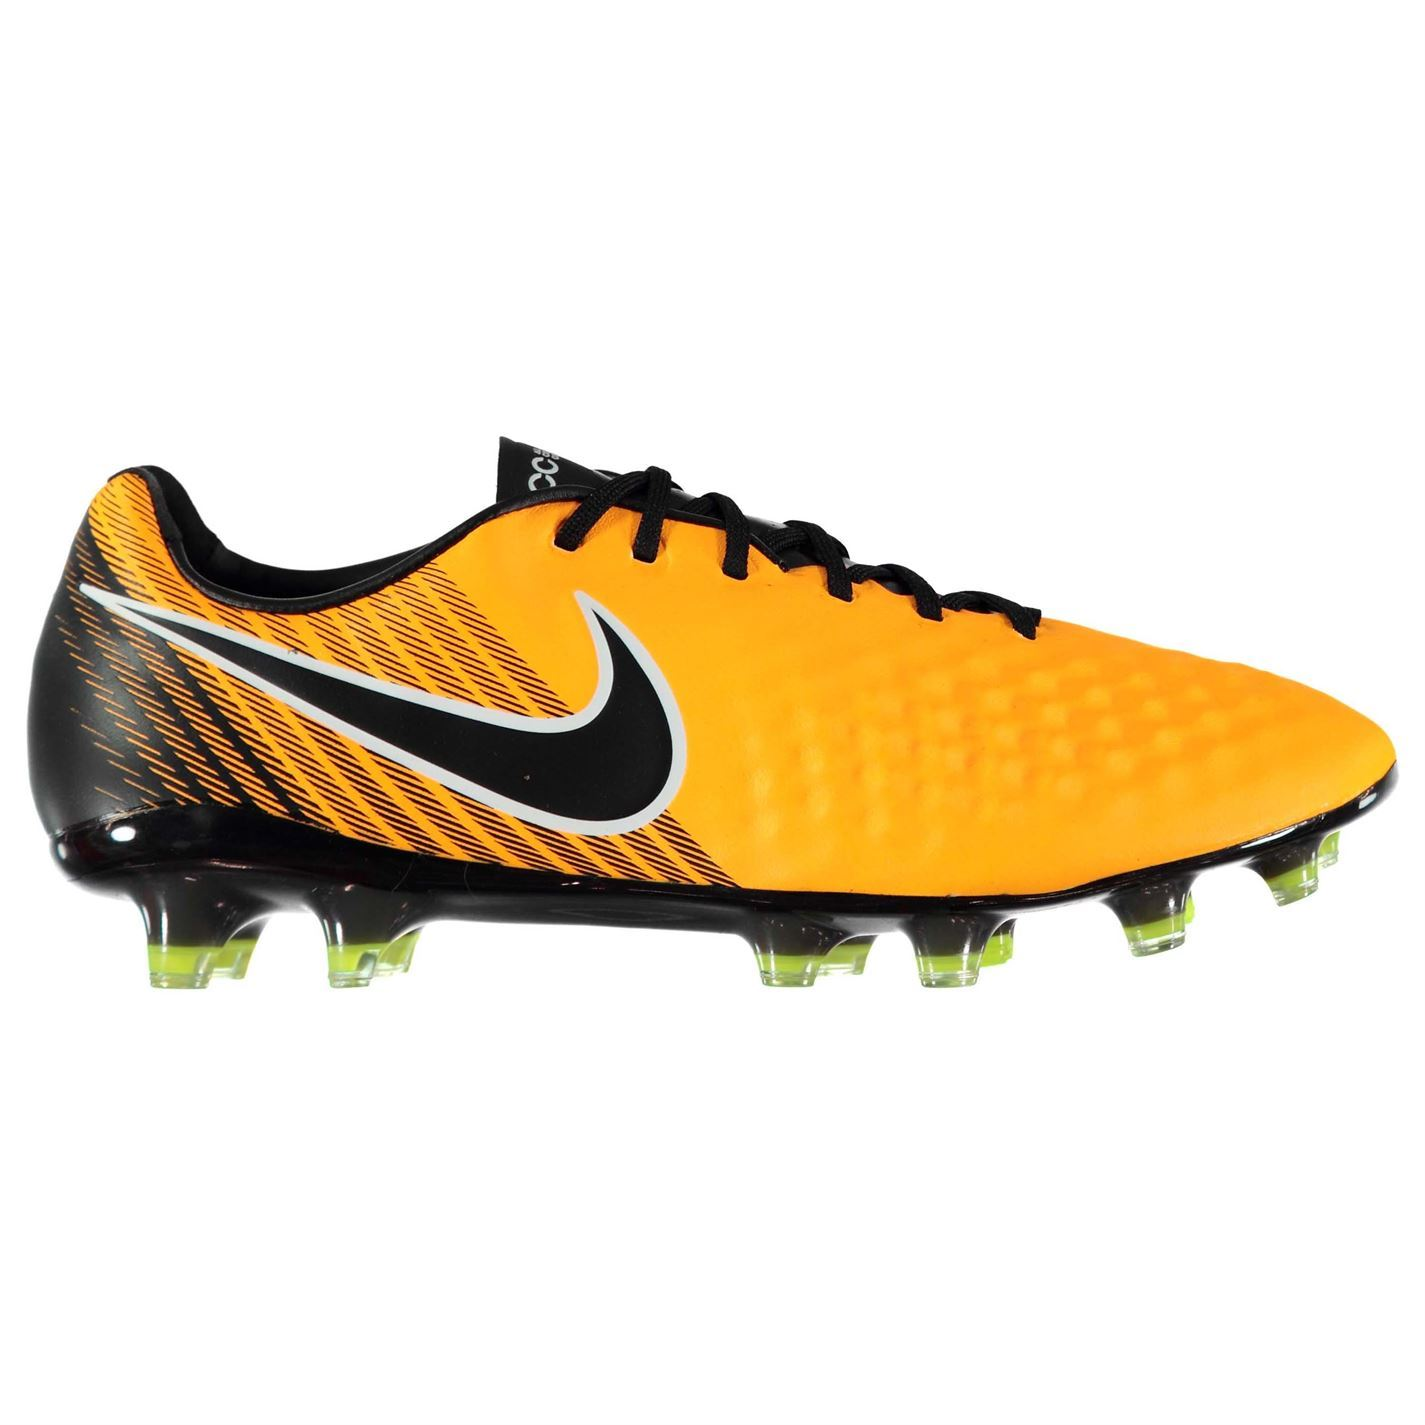 35a2d289e Details about Nike Magista Opus II Firm Ground Football Boots Mens Orange/ Black Soccer Cleats